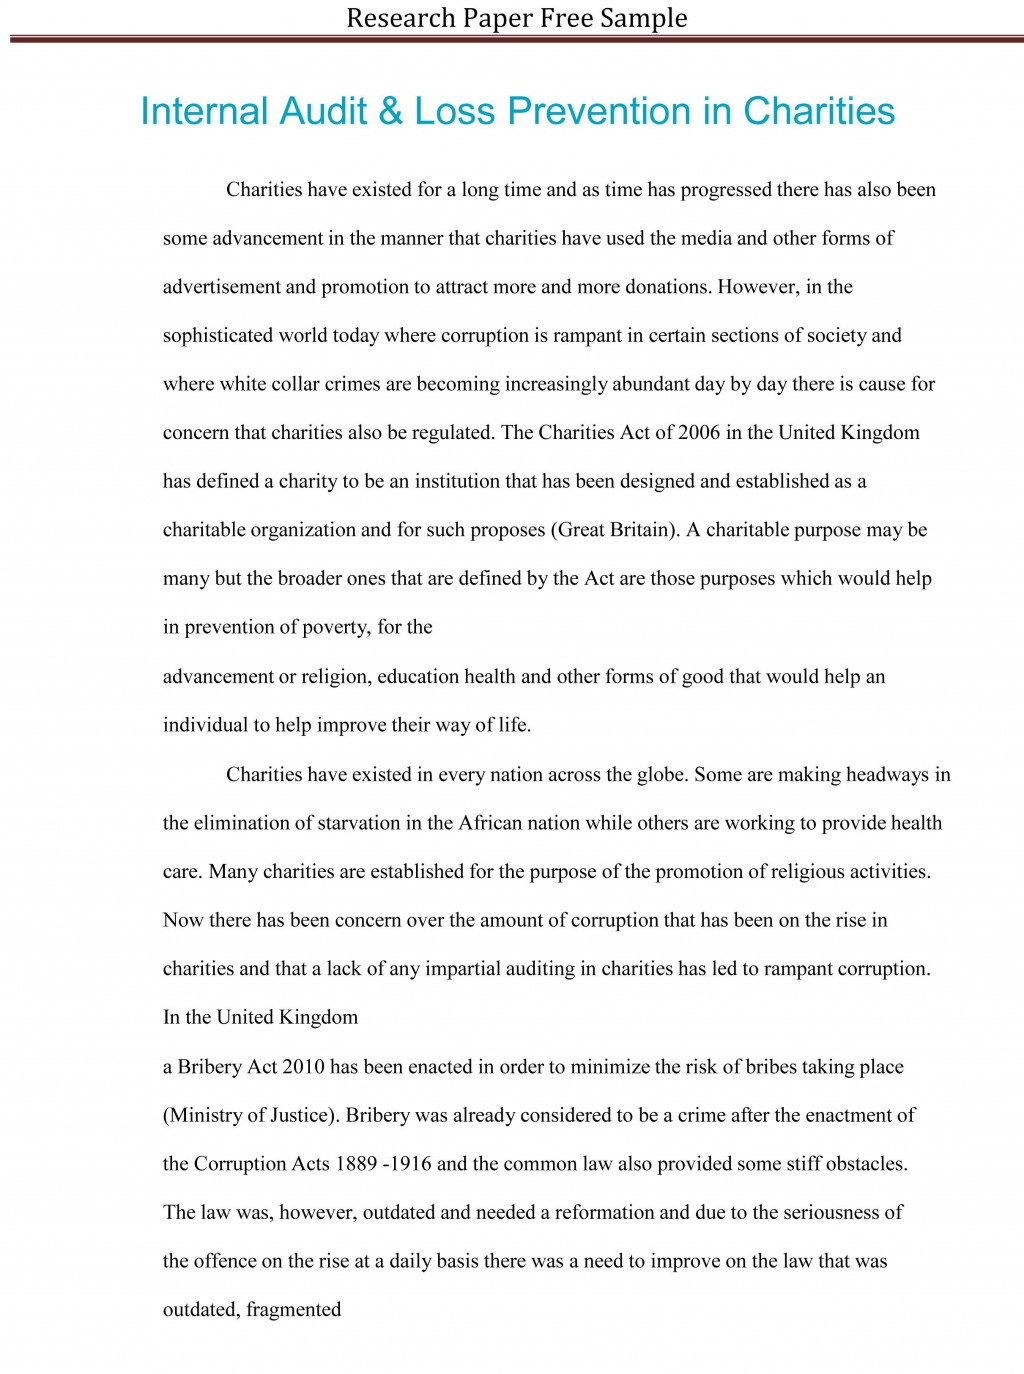 003 Research Paper Abuse Essays Amazing Papers Large